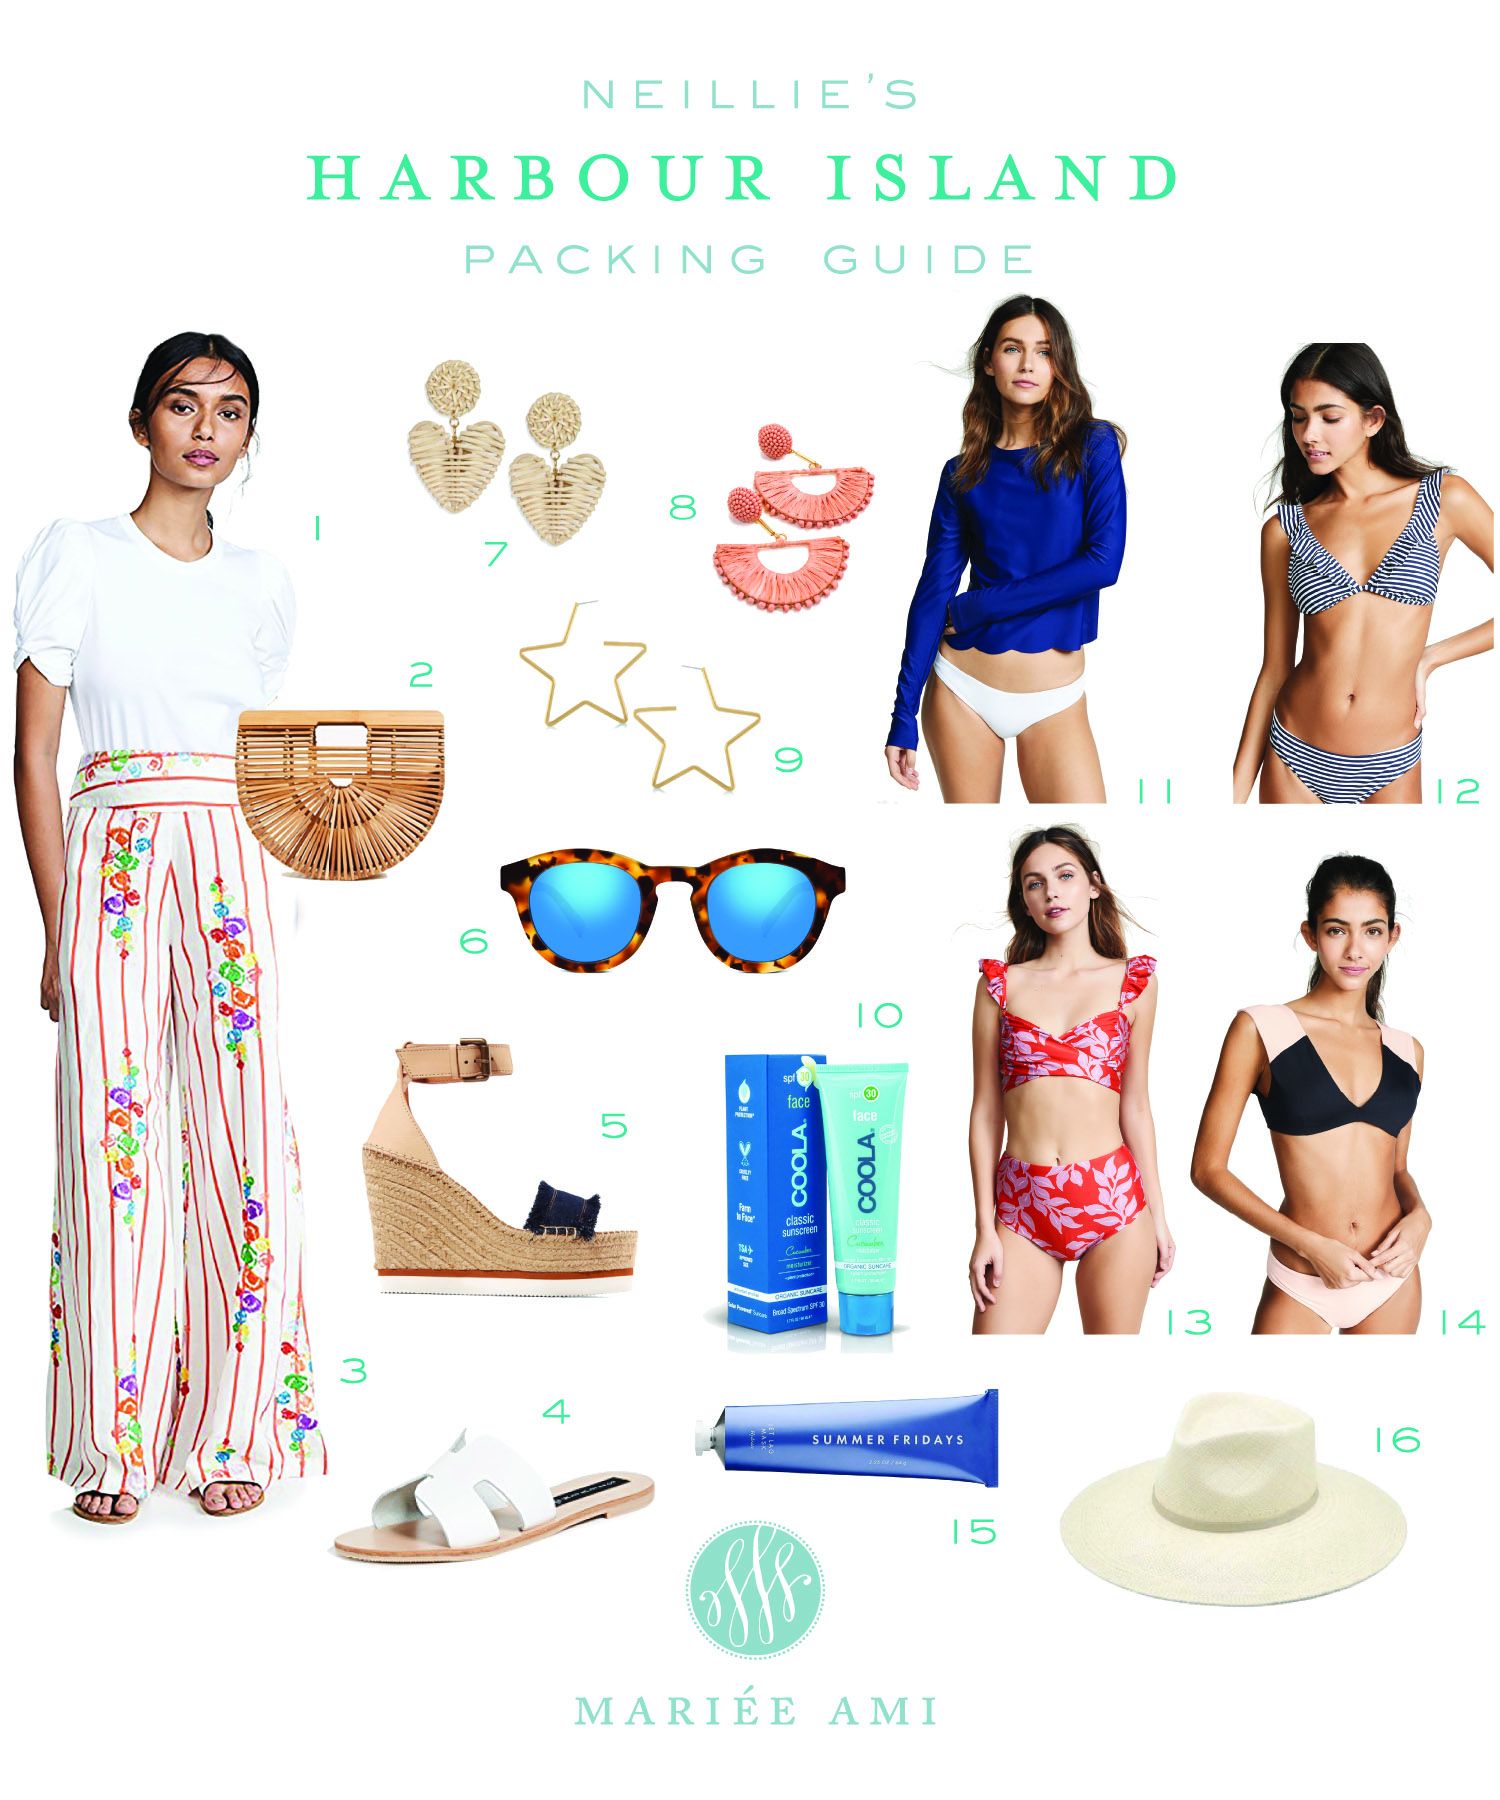 Neillies-Harbour-Island-Packing-Guide-1.jpg